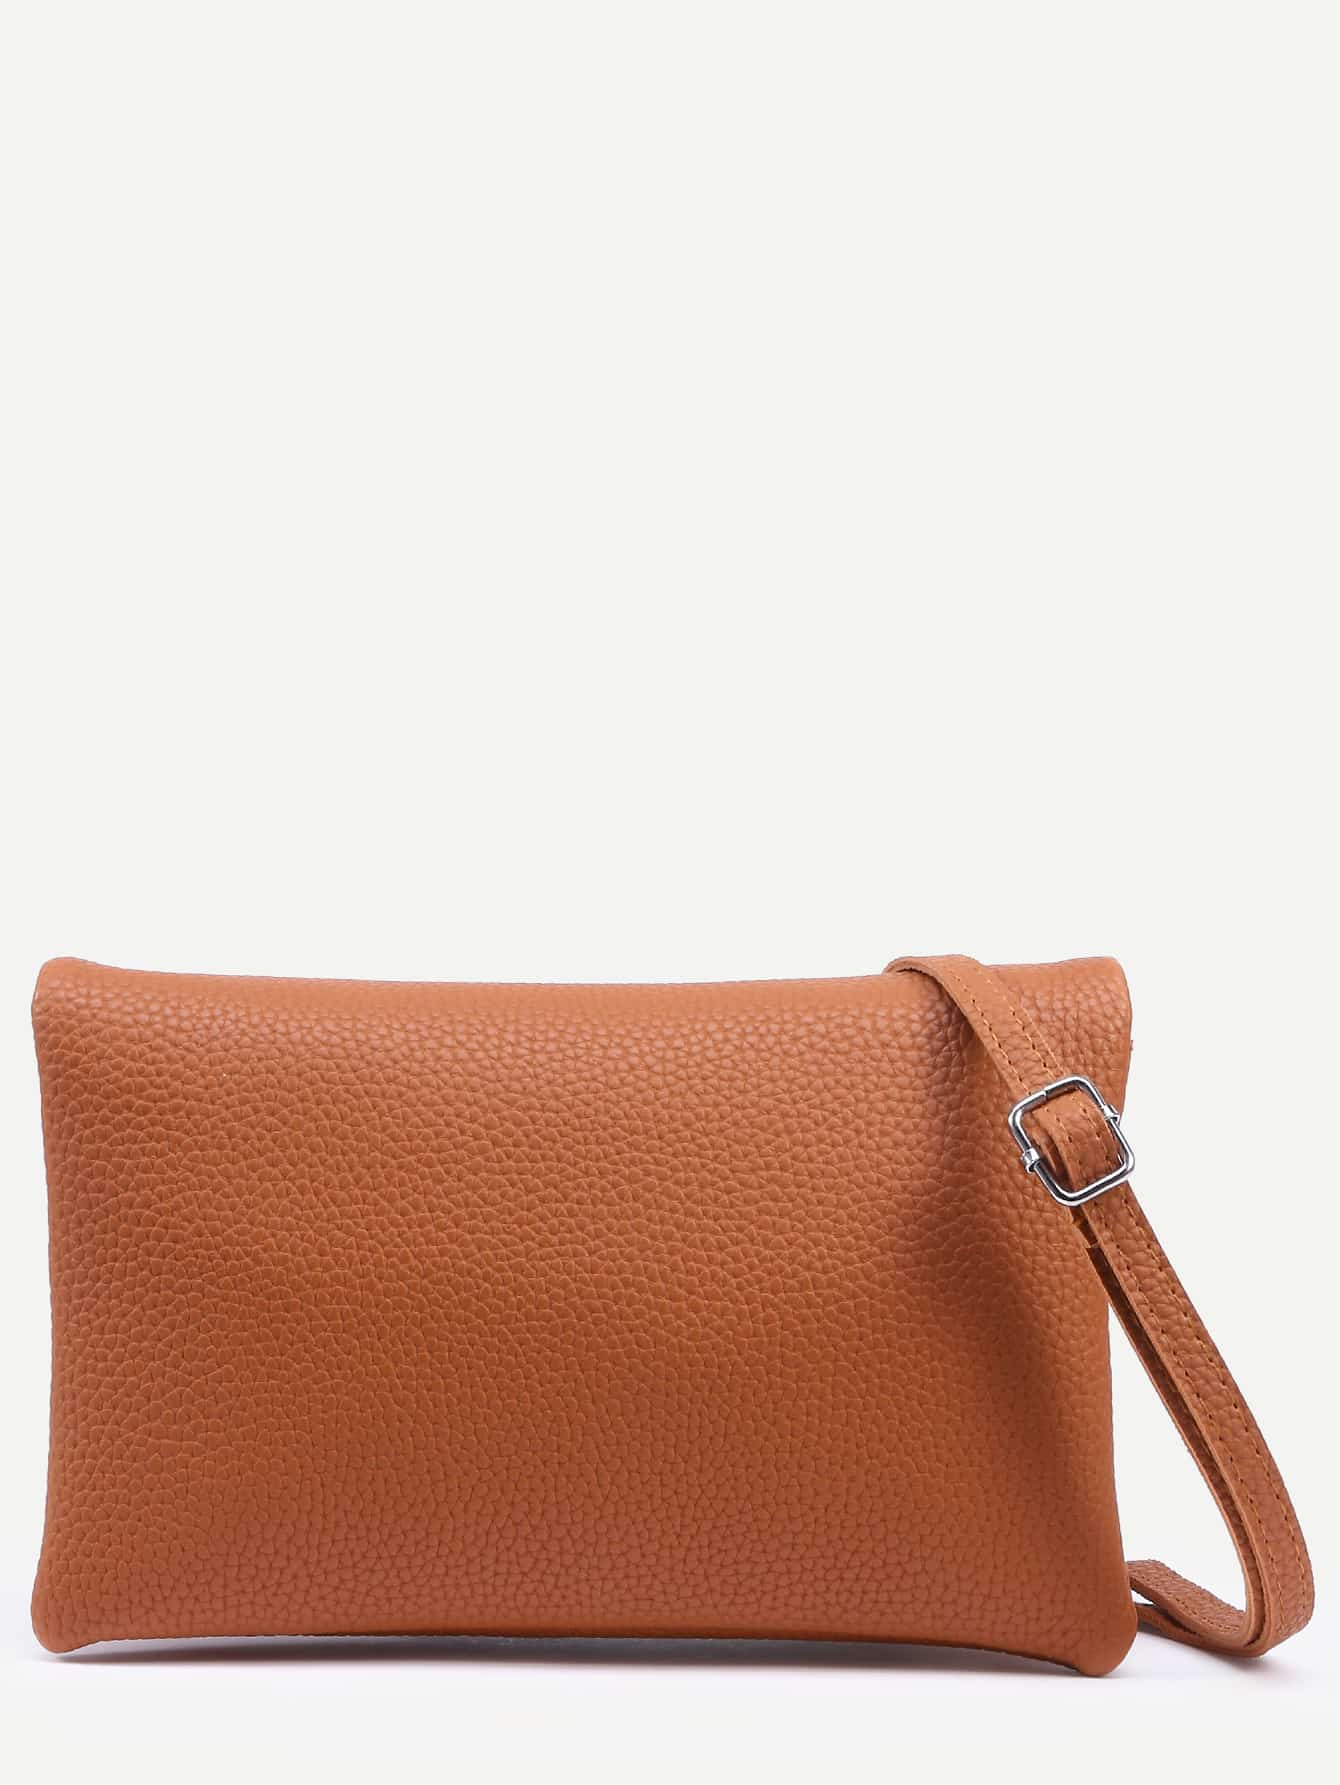 Camel Pebbled Faux Leather Multi Layer Fold Over BagCamel Pebbled Faux Leather Multi Layer Fold Over Bag<br><br>color: Camel<br>size: None